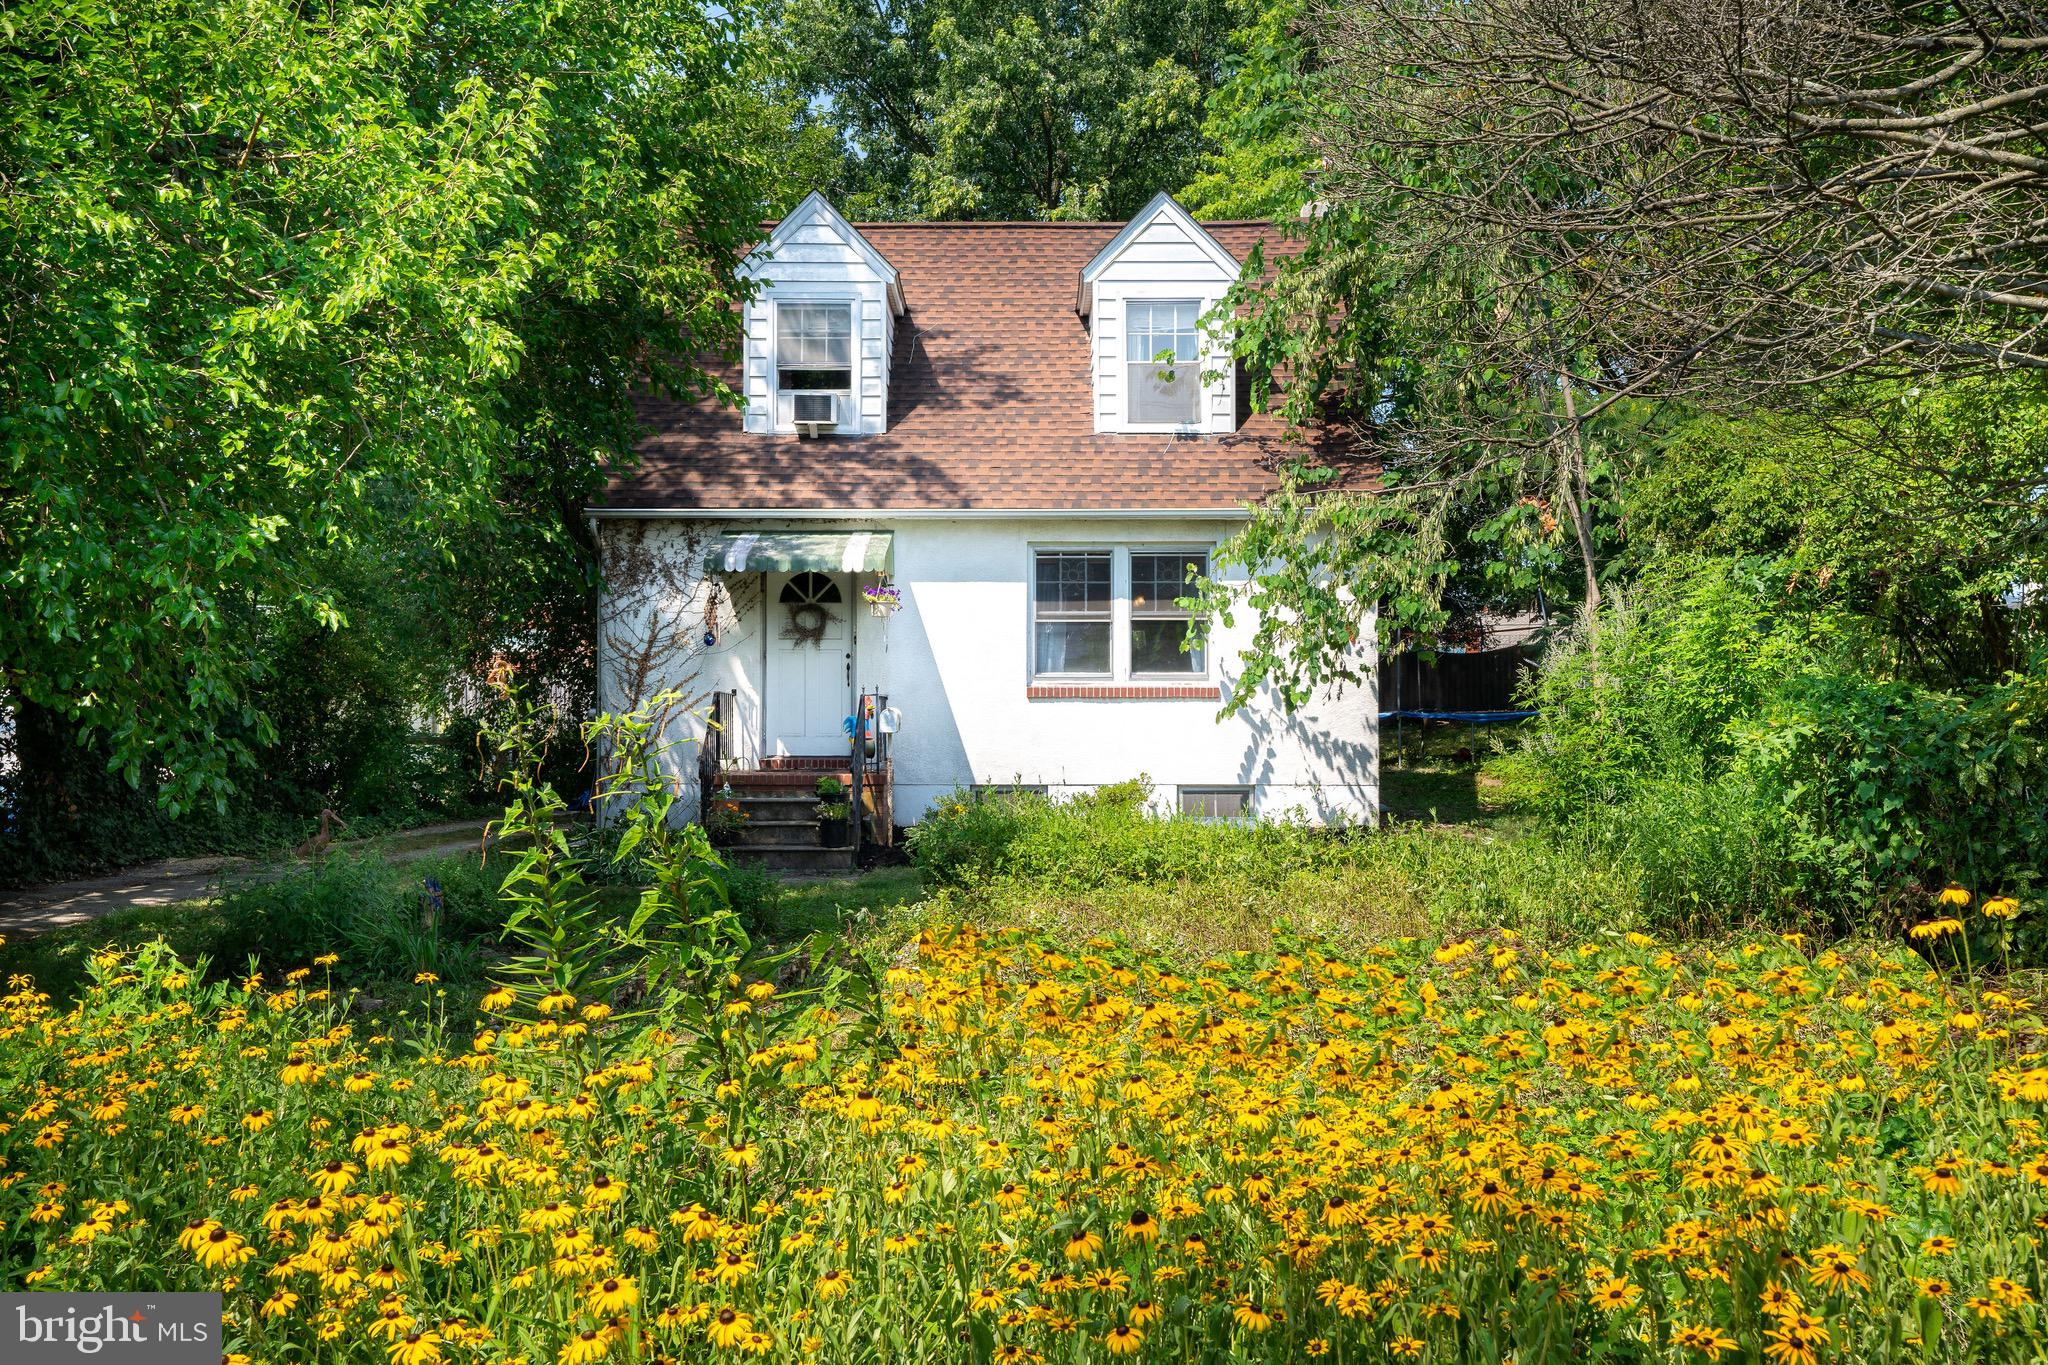 ALTHOUGH ON HAMMONDS FERRY ROAD, HOME HAS OVER 100' SETBACK ON APPROXIMATELY 1/3 ACRE LOT!! SHOW OFF